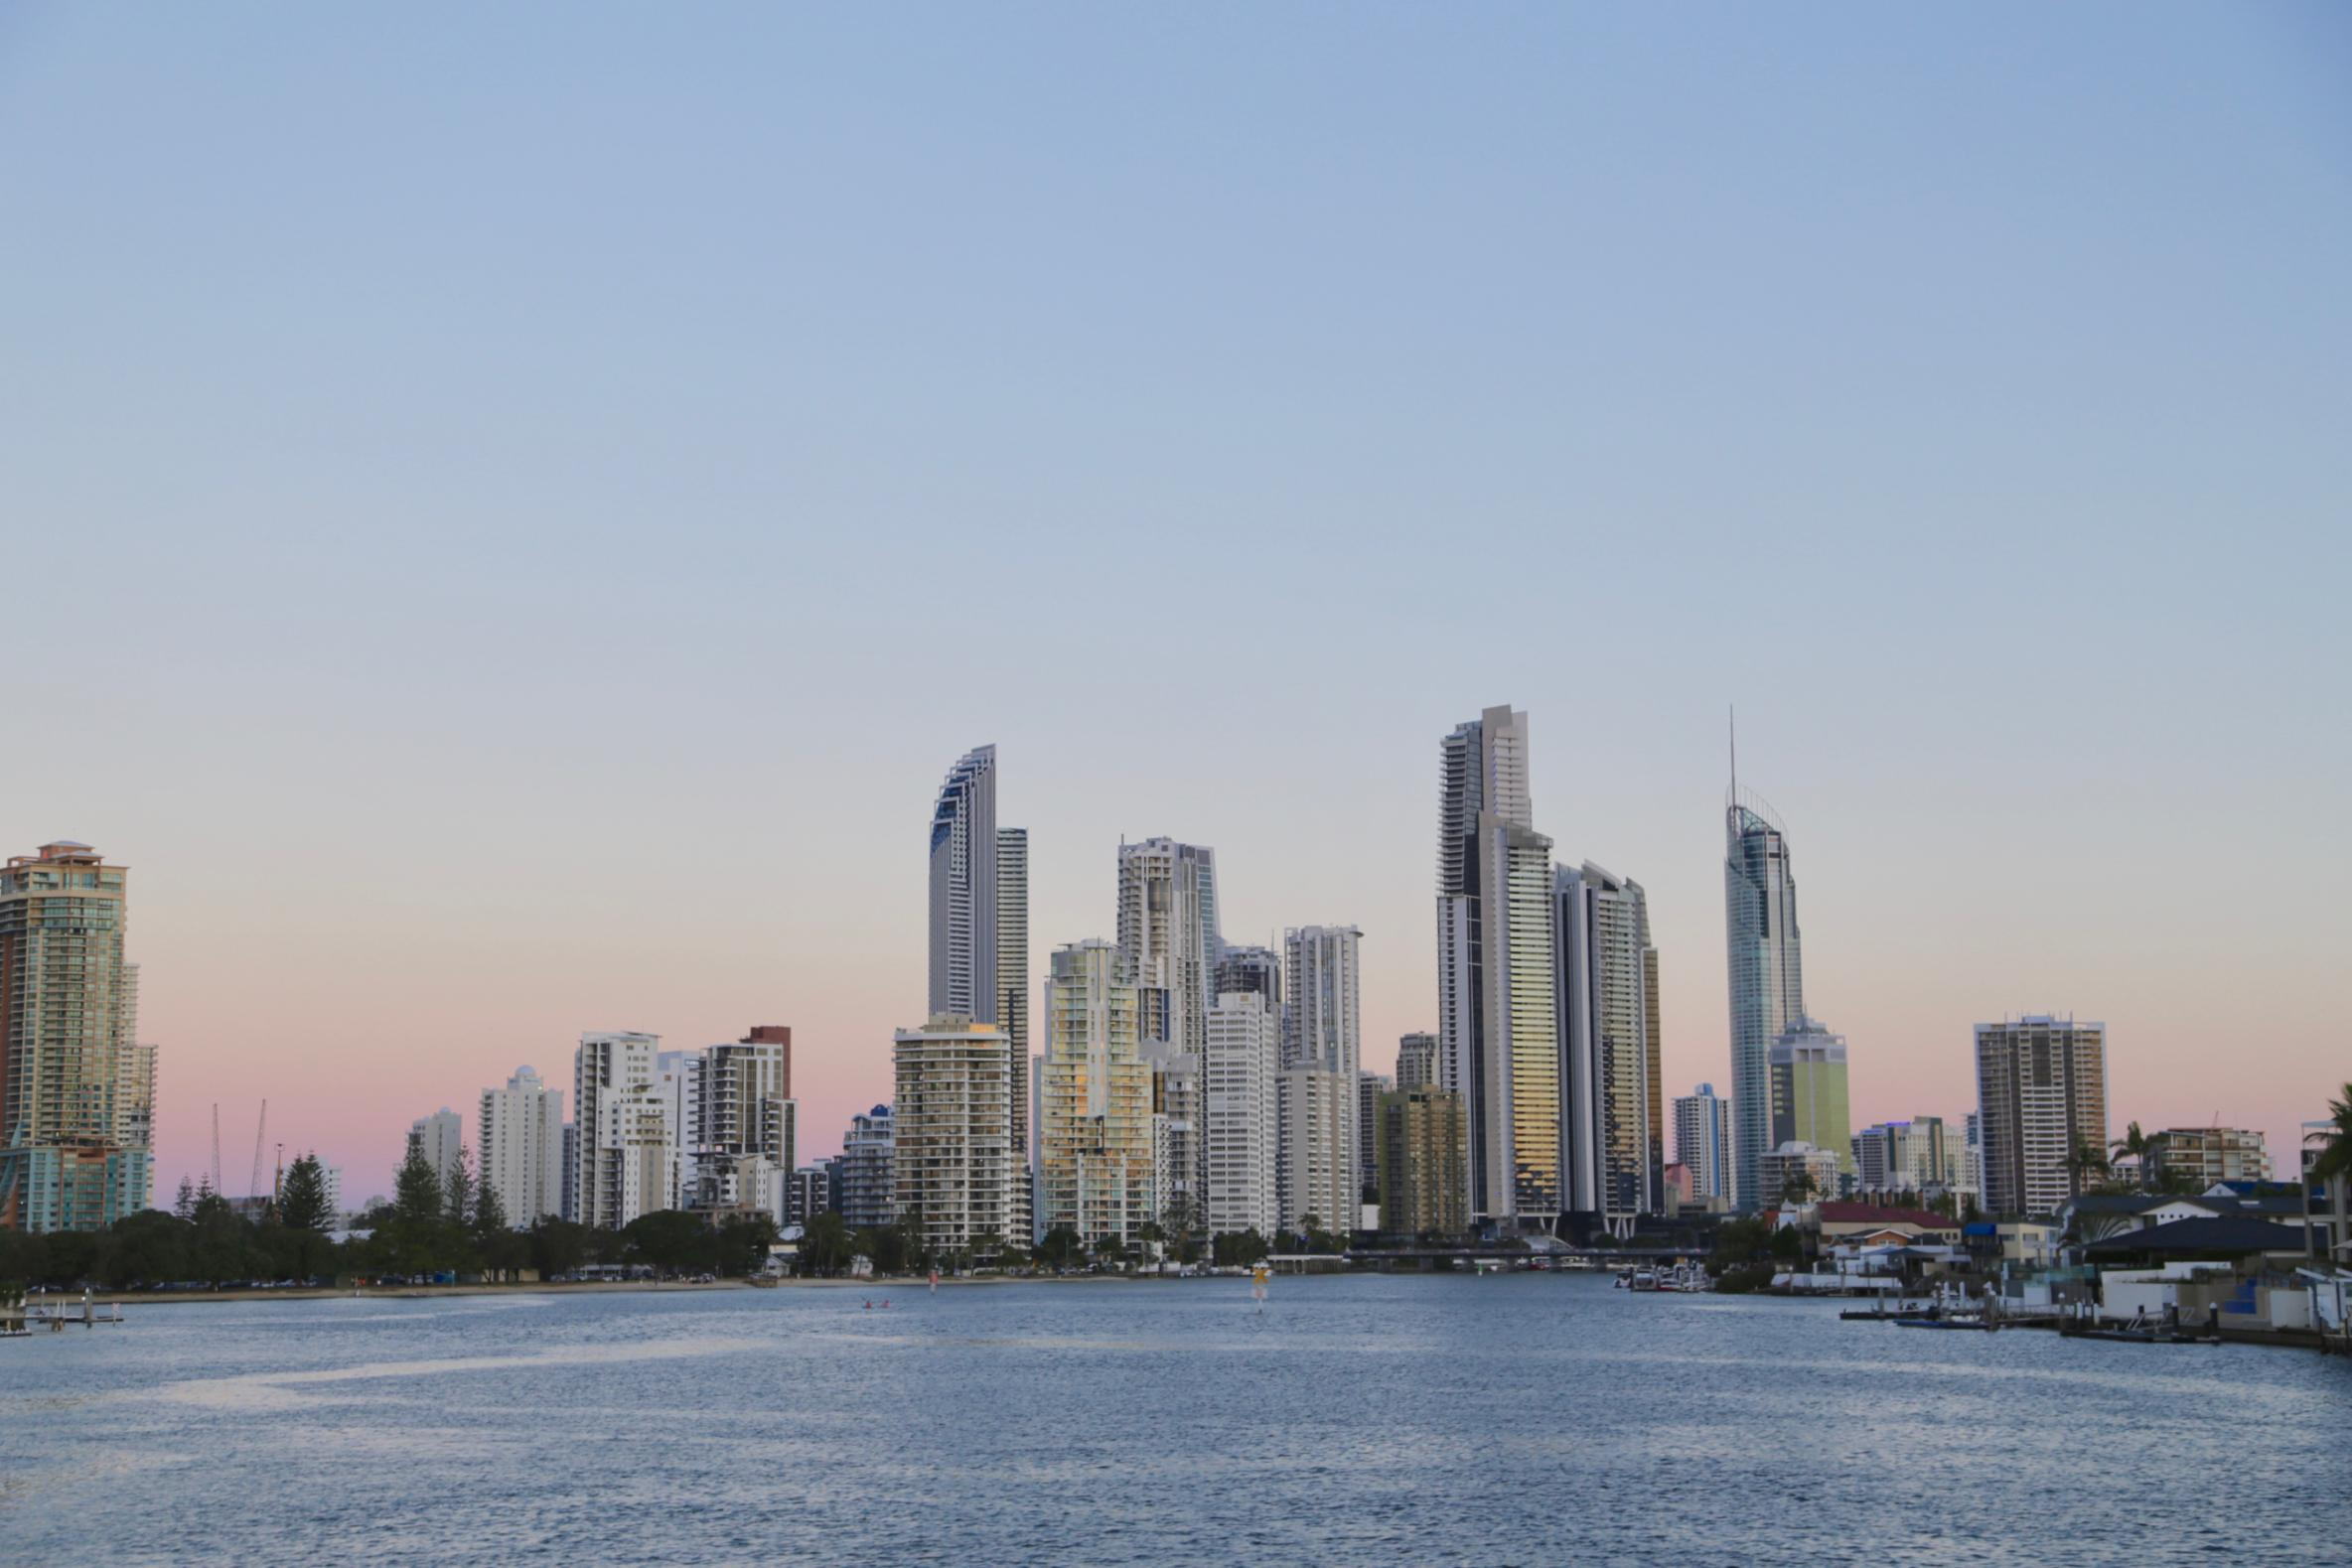 Australia S Gold Coast From Touristy To Sophisticated Cnn